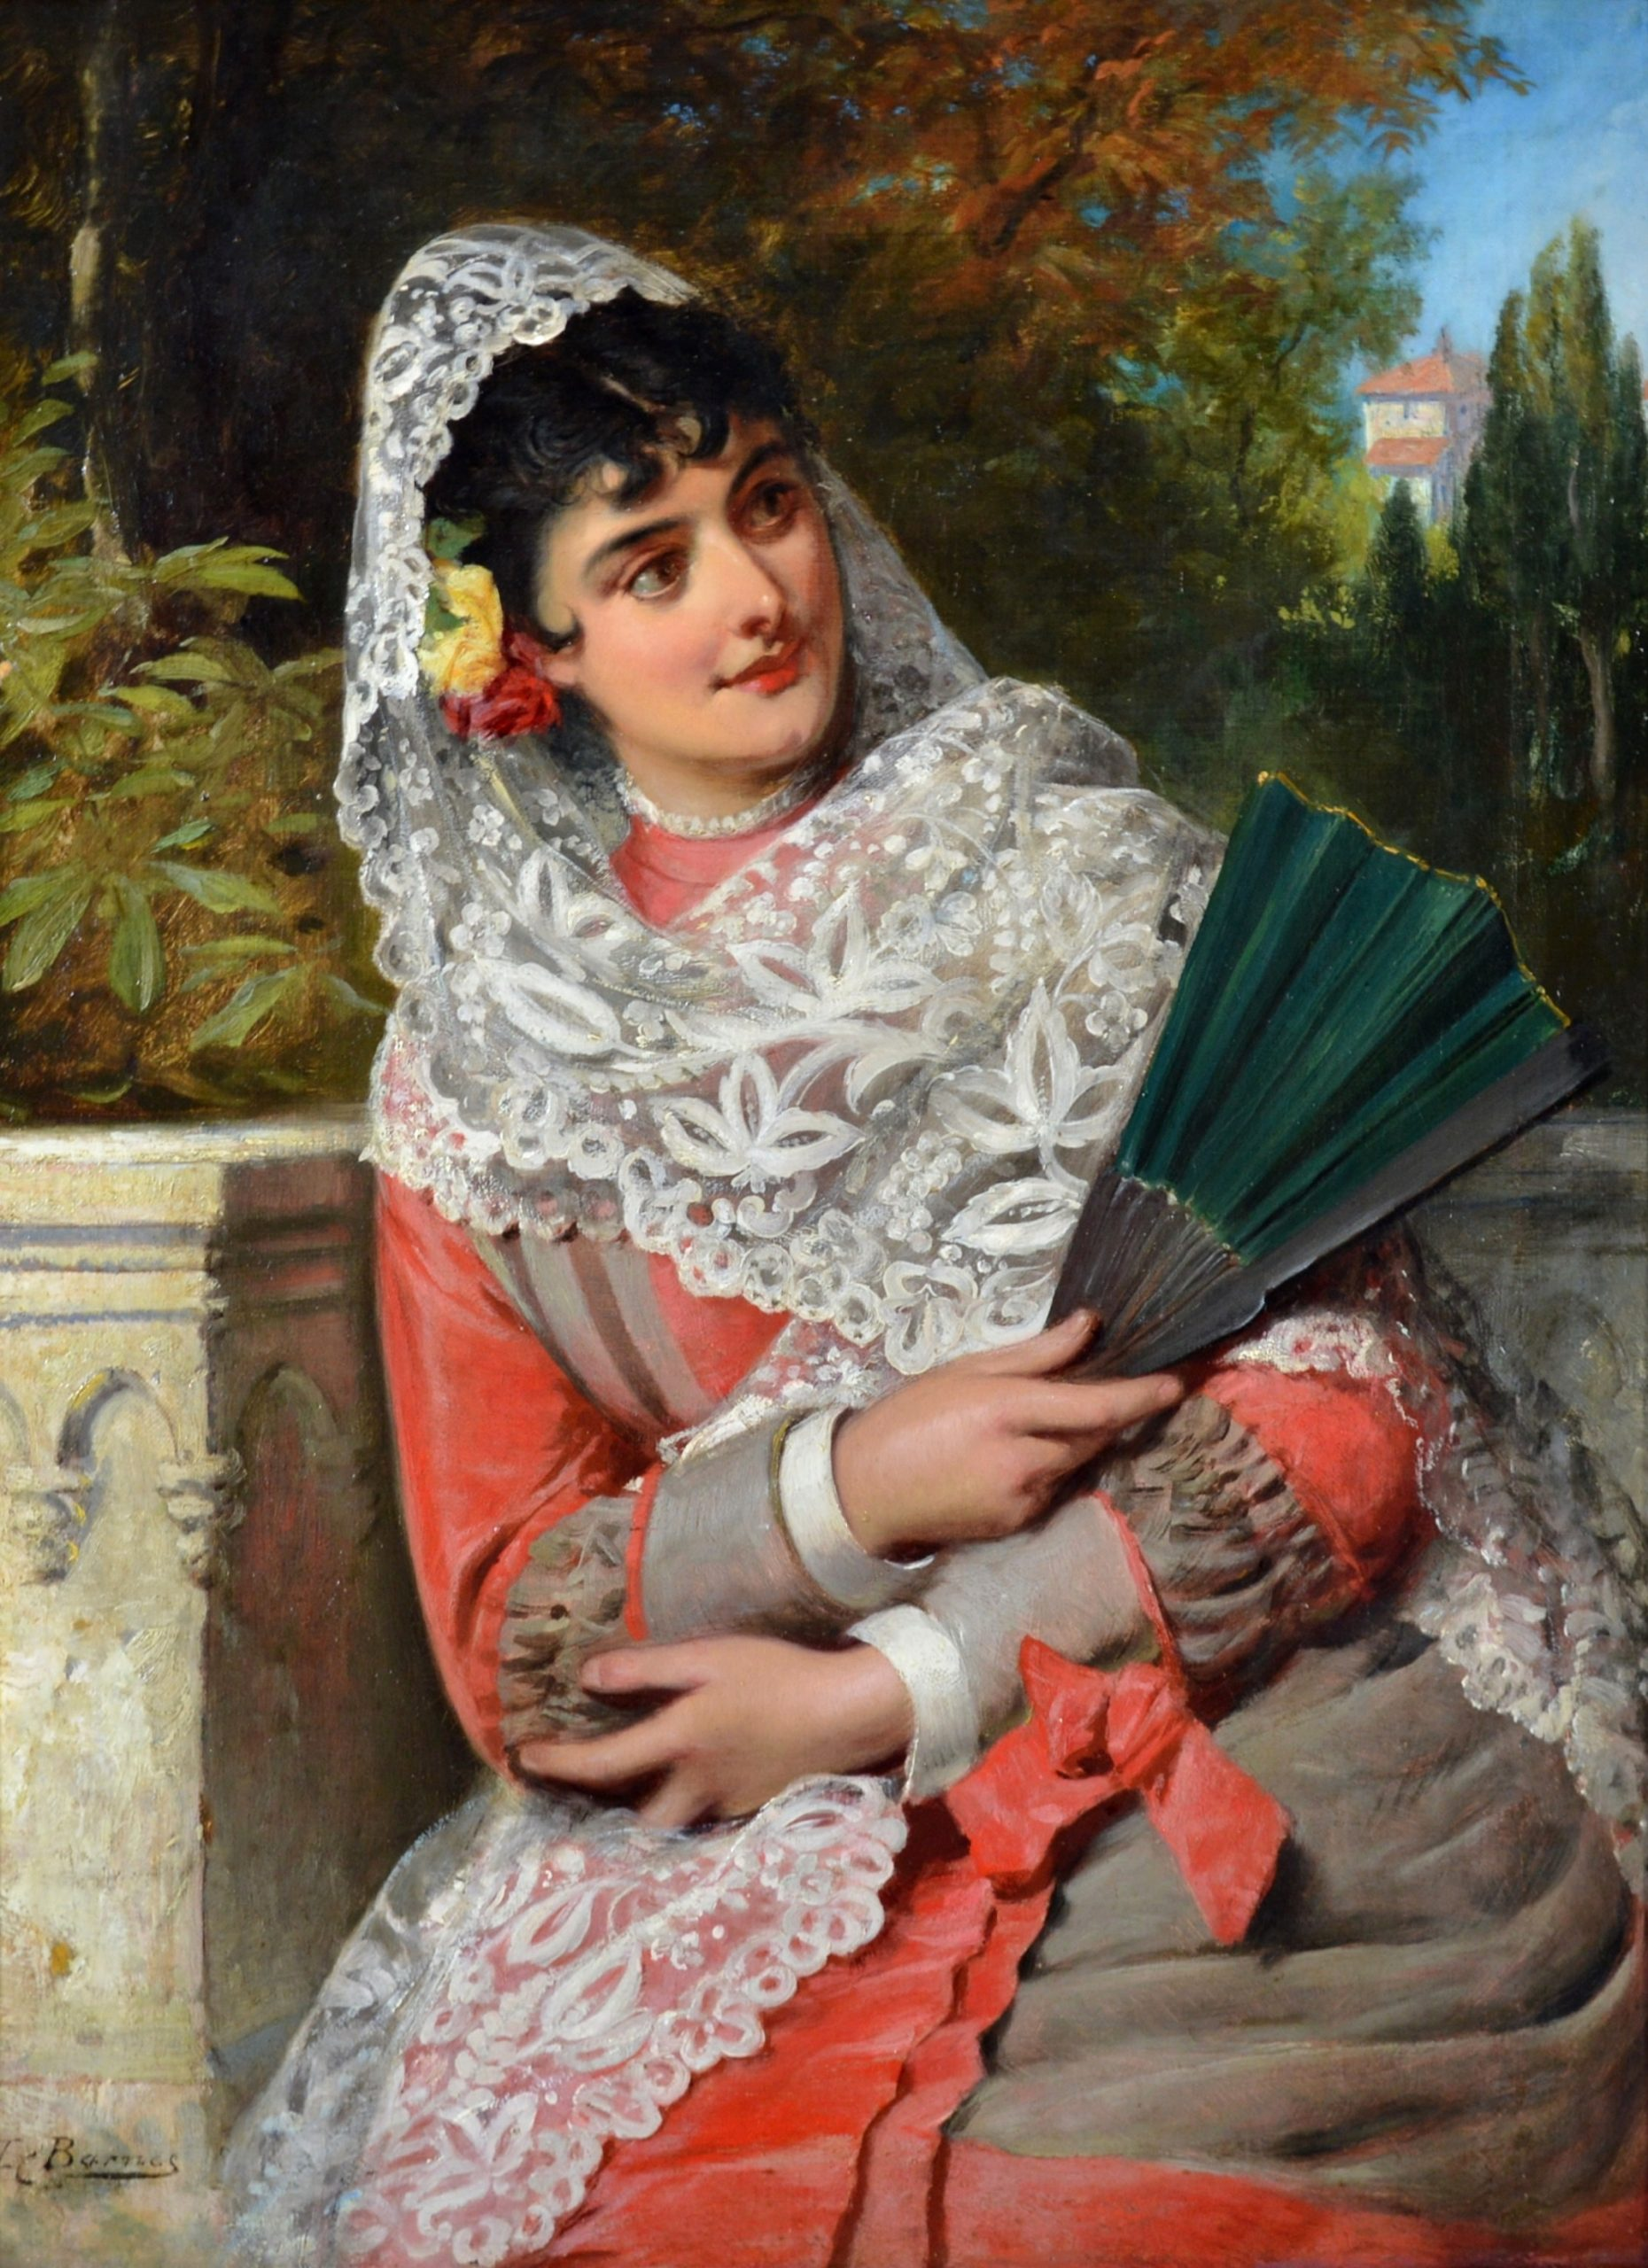 Andalusian Beauty - 19th Century Oil Painting Portrait of Spanish Girl Image